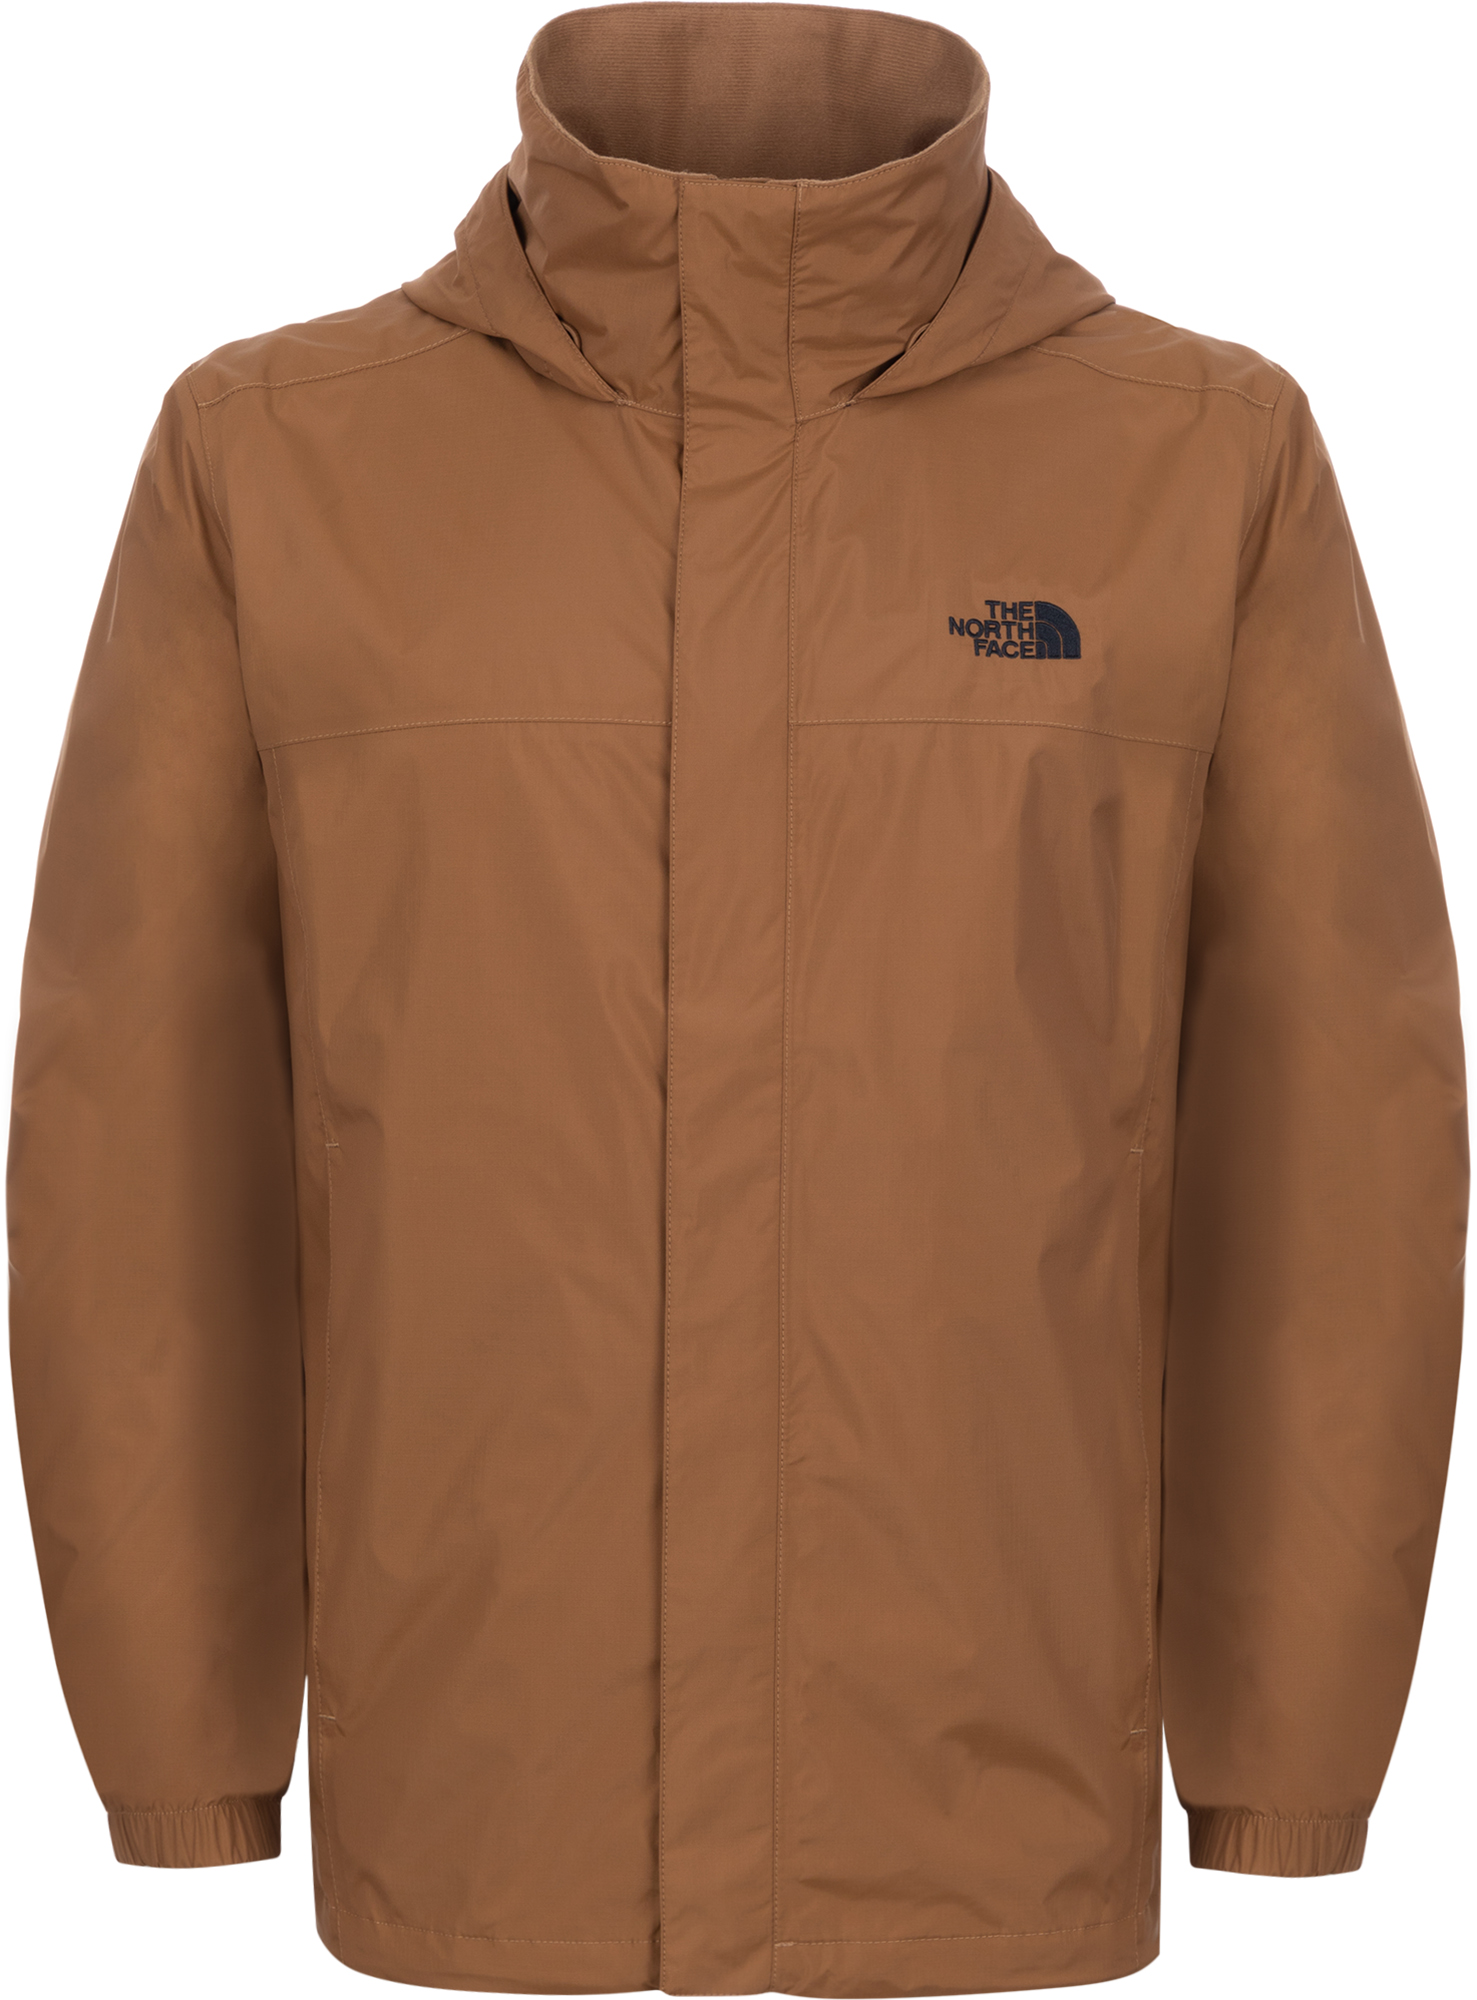 The North Face Ветровка мужская The North Face Resolve 2, размер 50